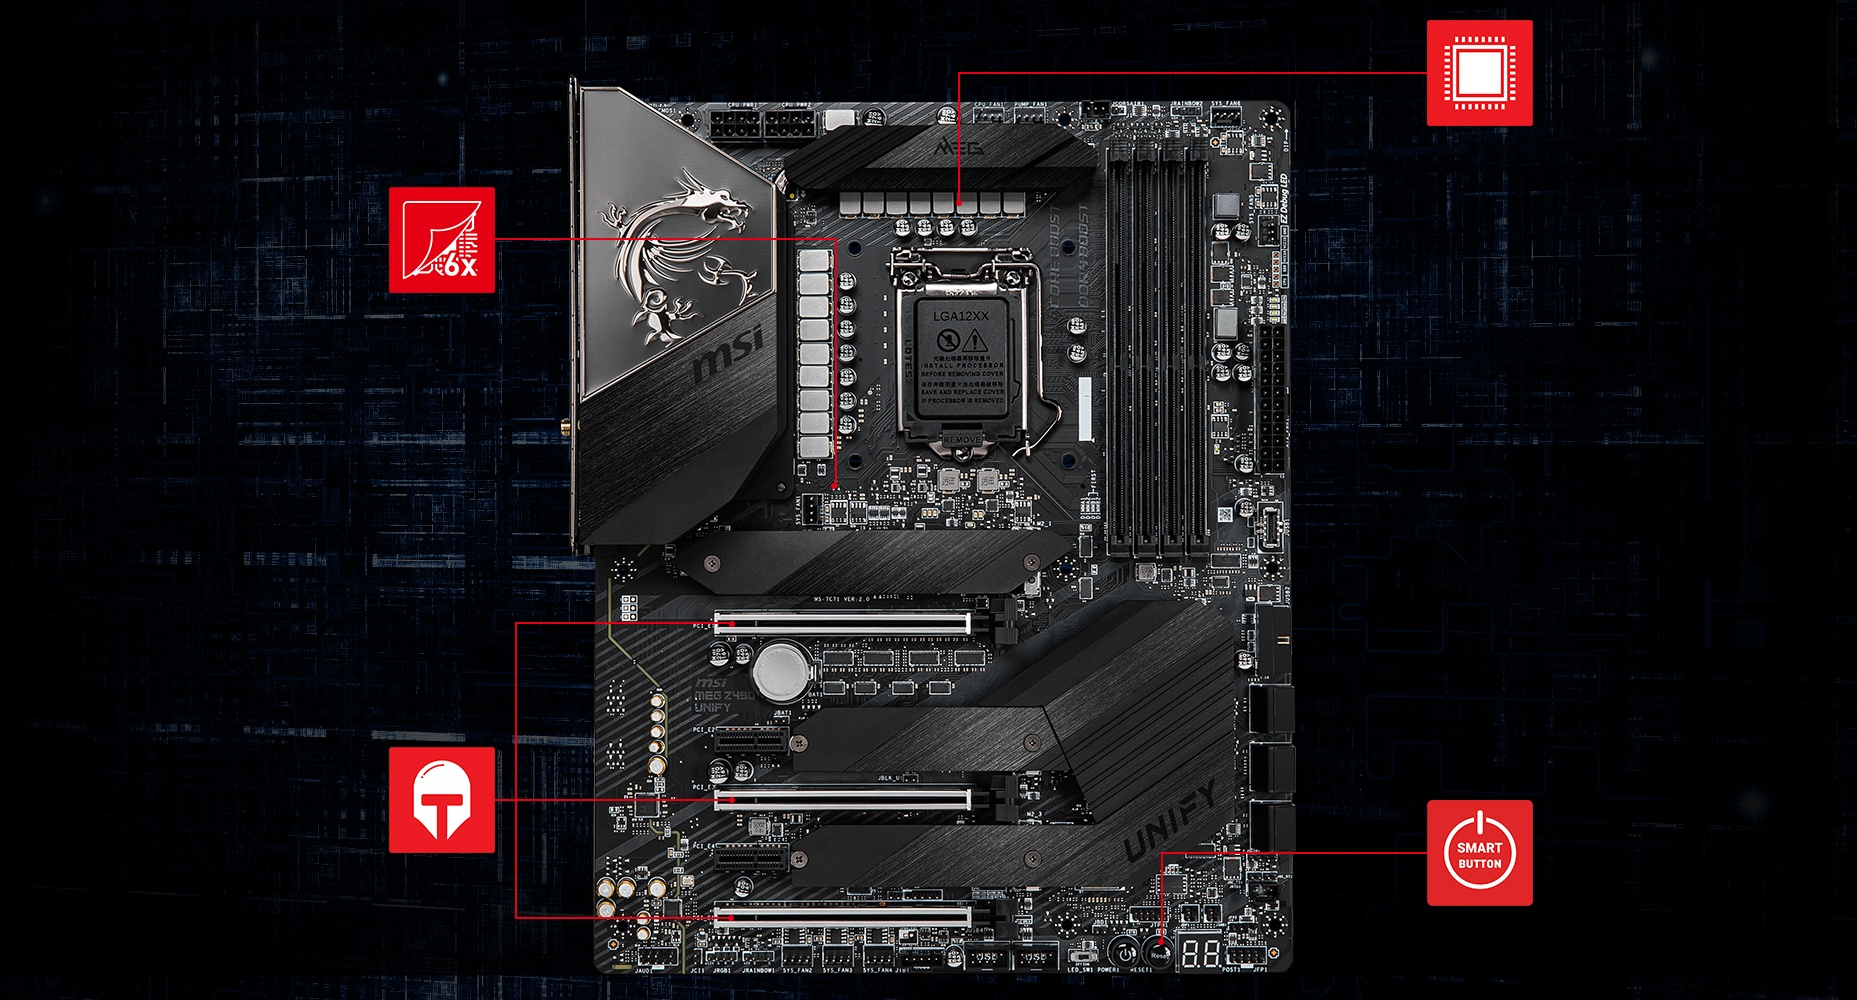 Creator z490 motherboard and a video card